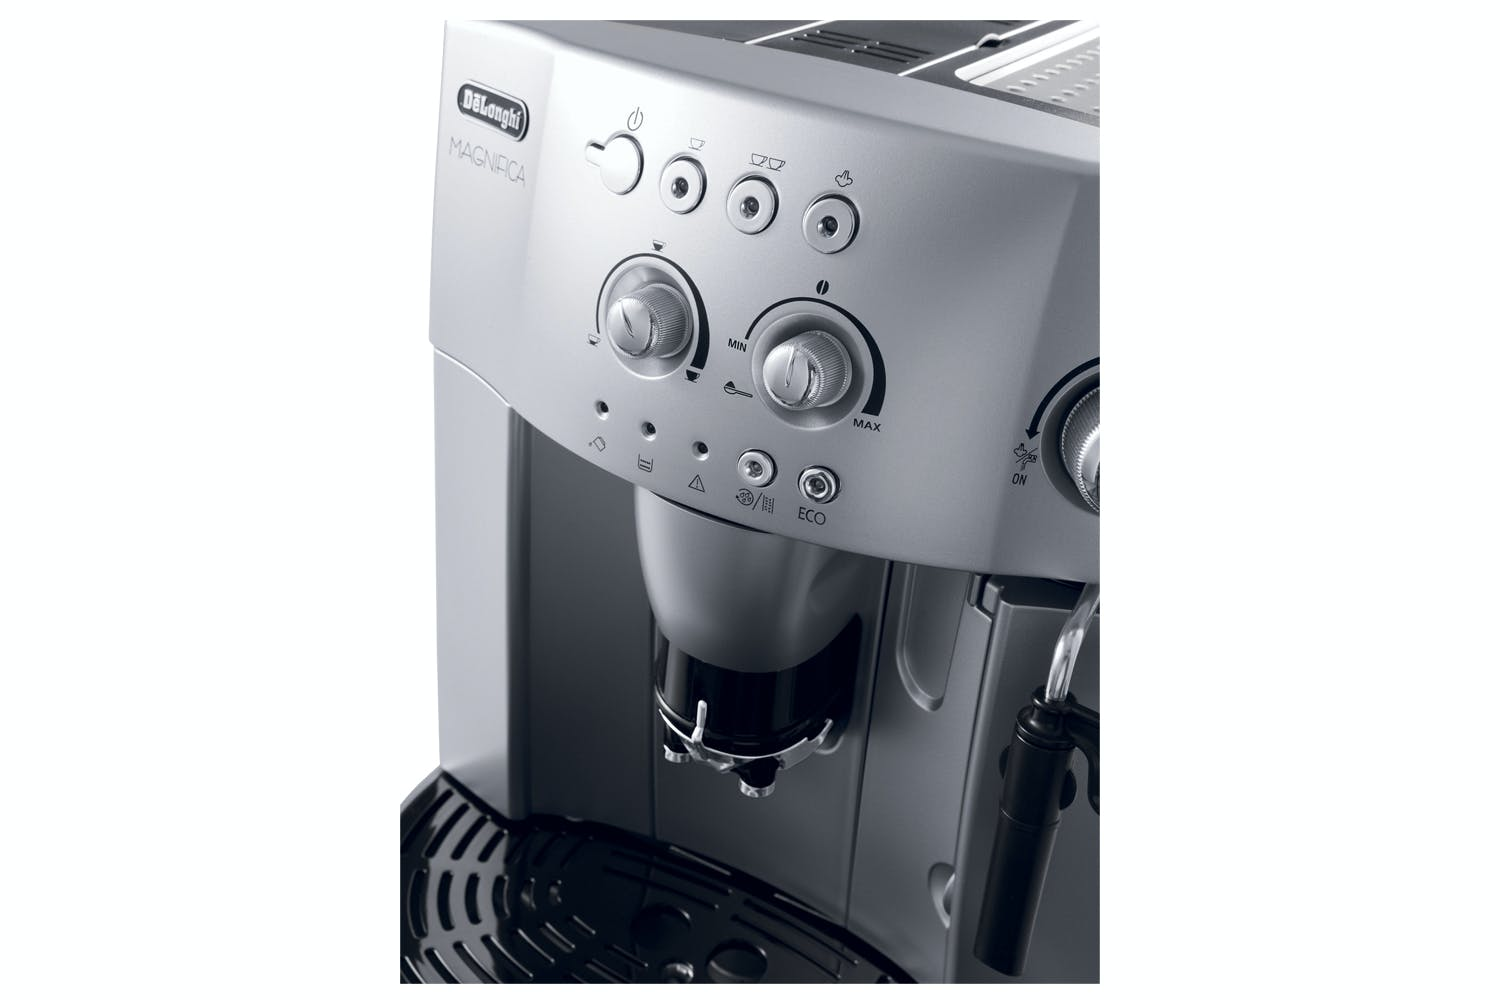 64418ab1572 ... DeLonghi Magnifica Bean to Cup Coffee Machine